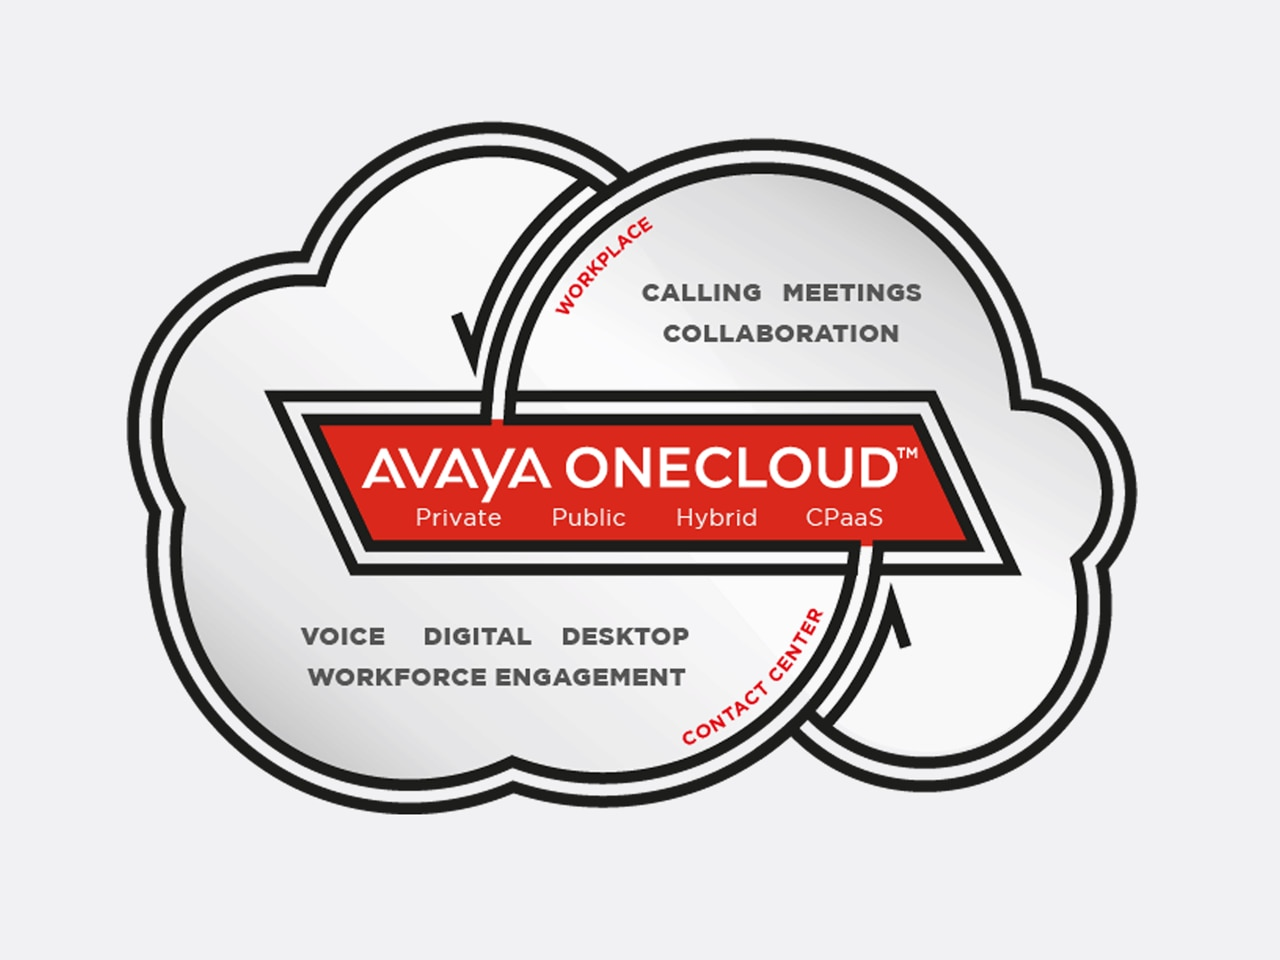 Experience Avaya OneCloud for Business Communications | Avaya